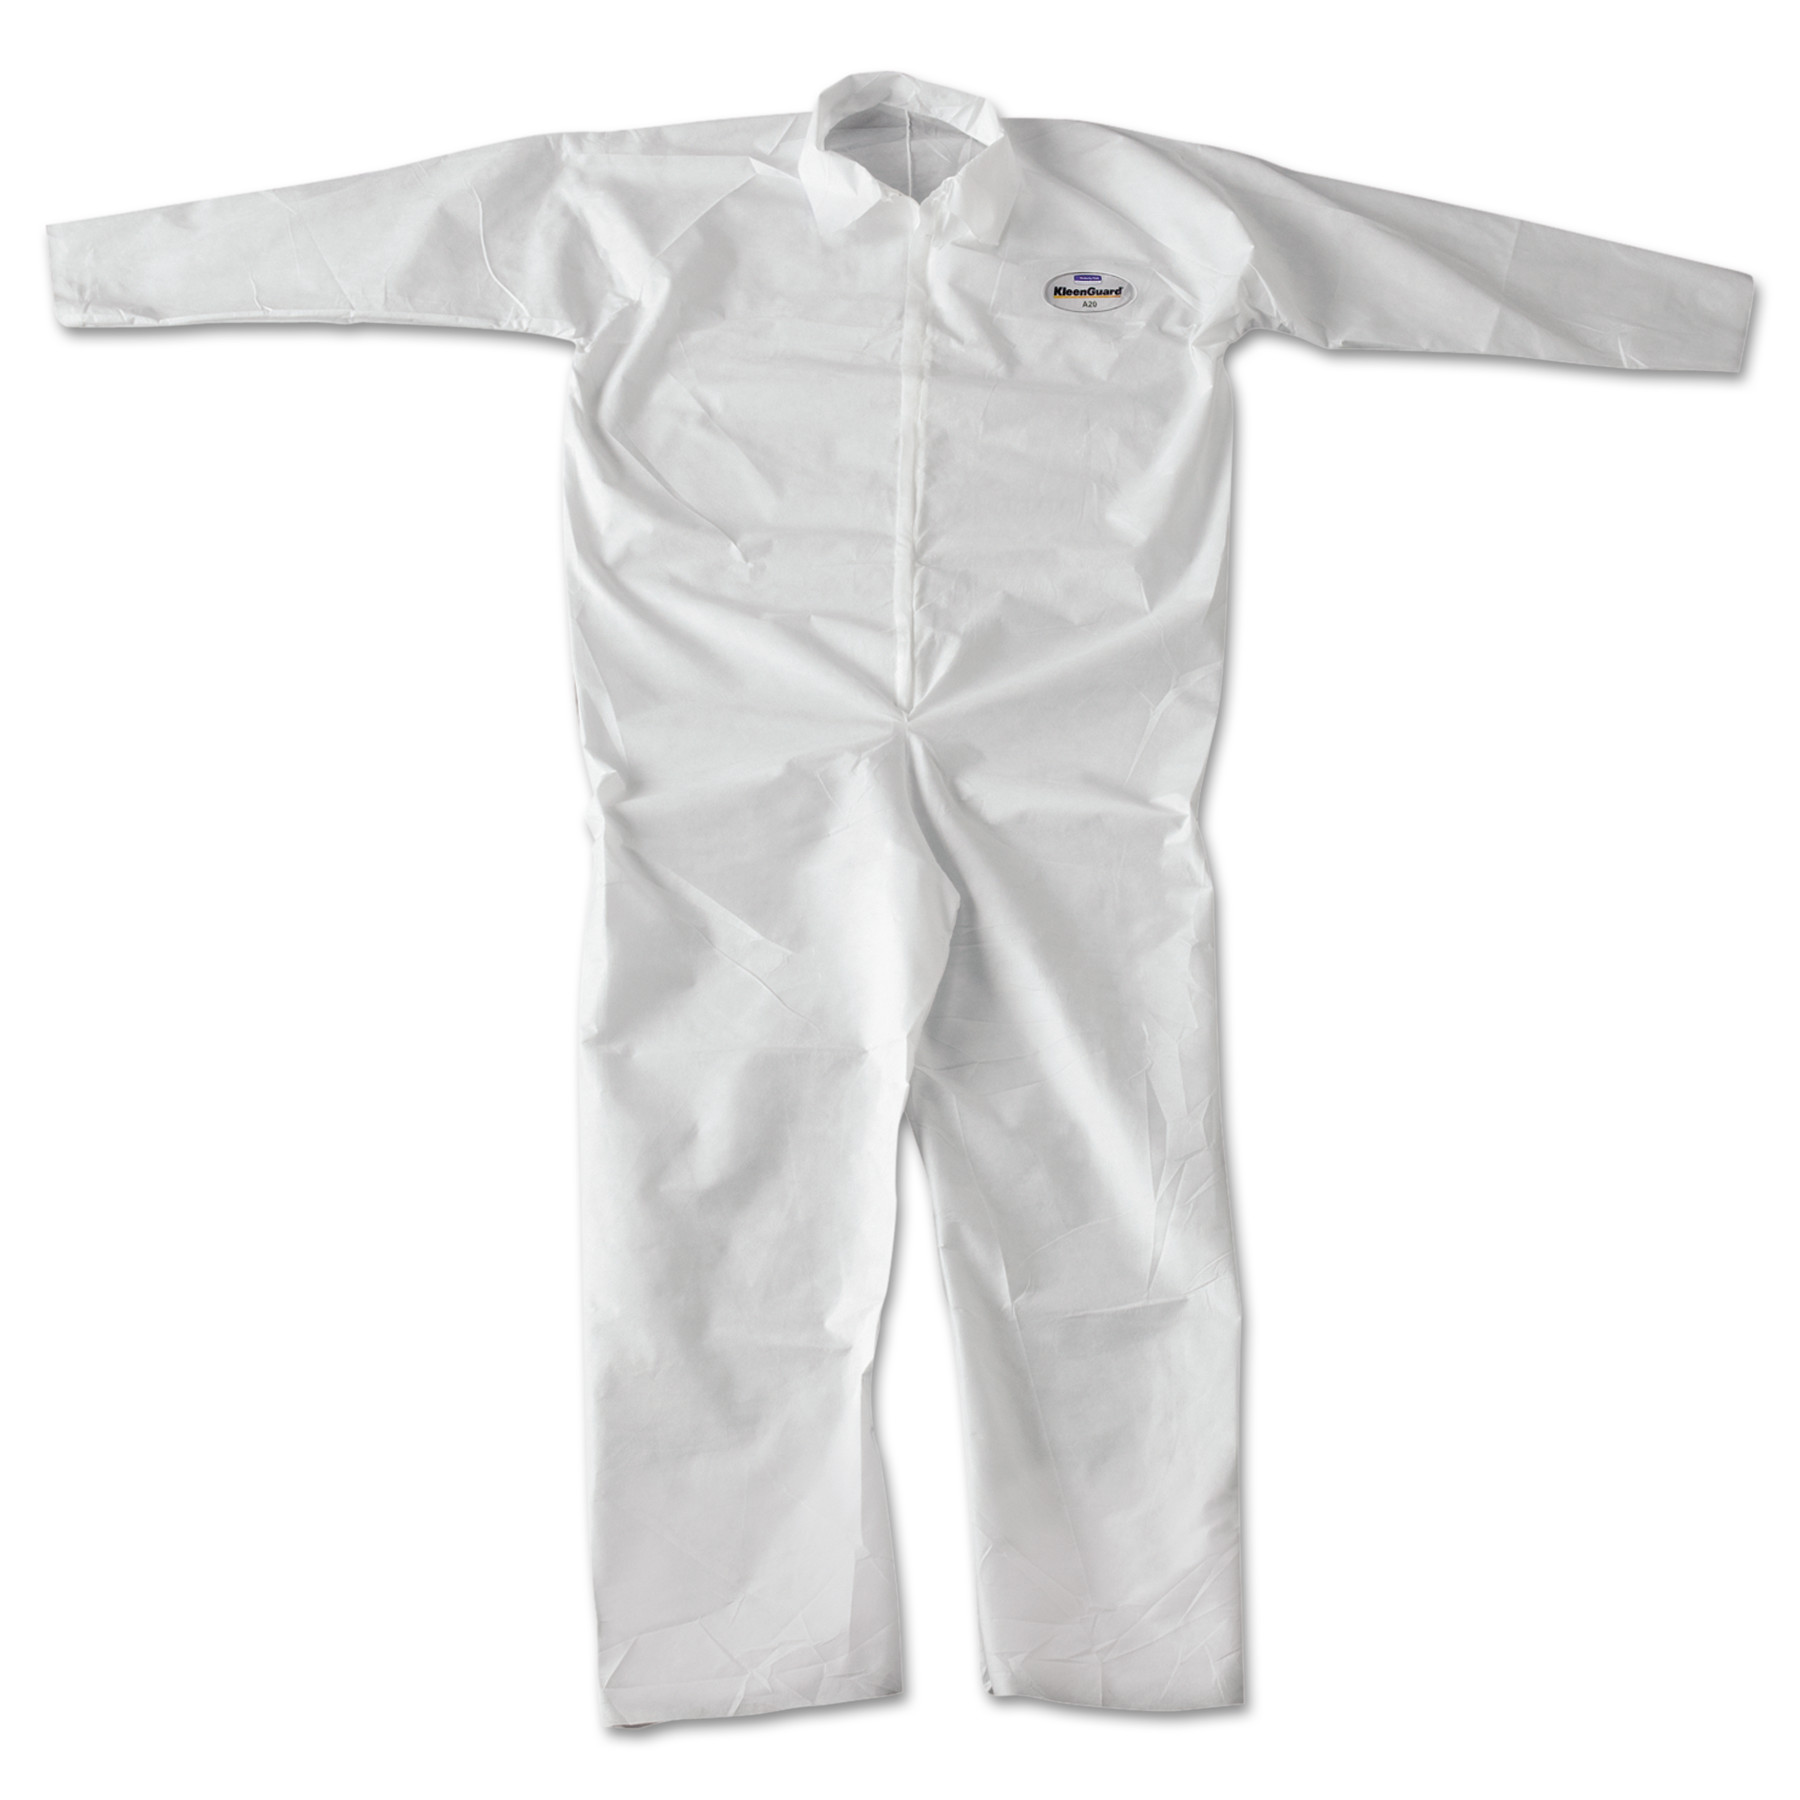 KleenGuard A20 Breathable Particle-Pro Coveralls, Zip, 2XL, White, 24 Per Carton by Kimberly Clark